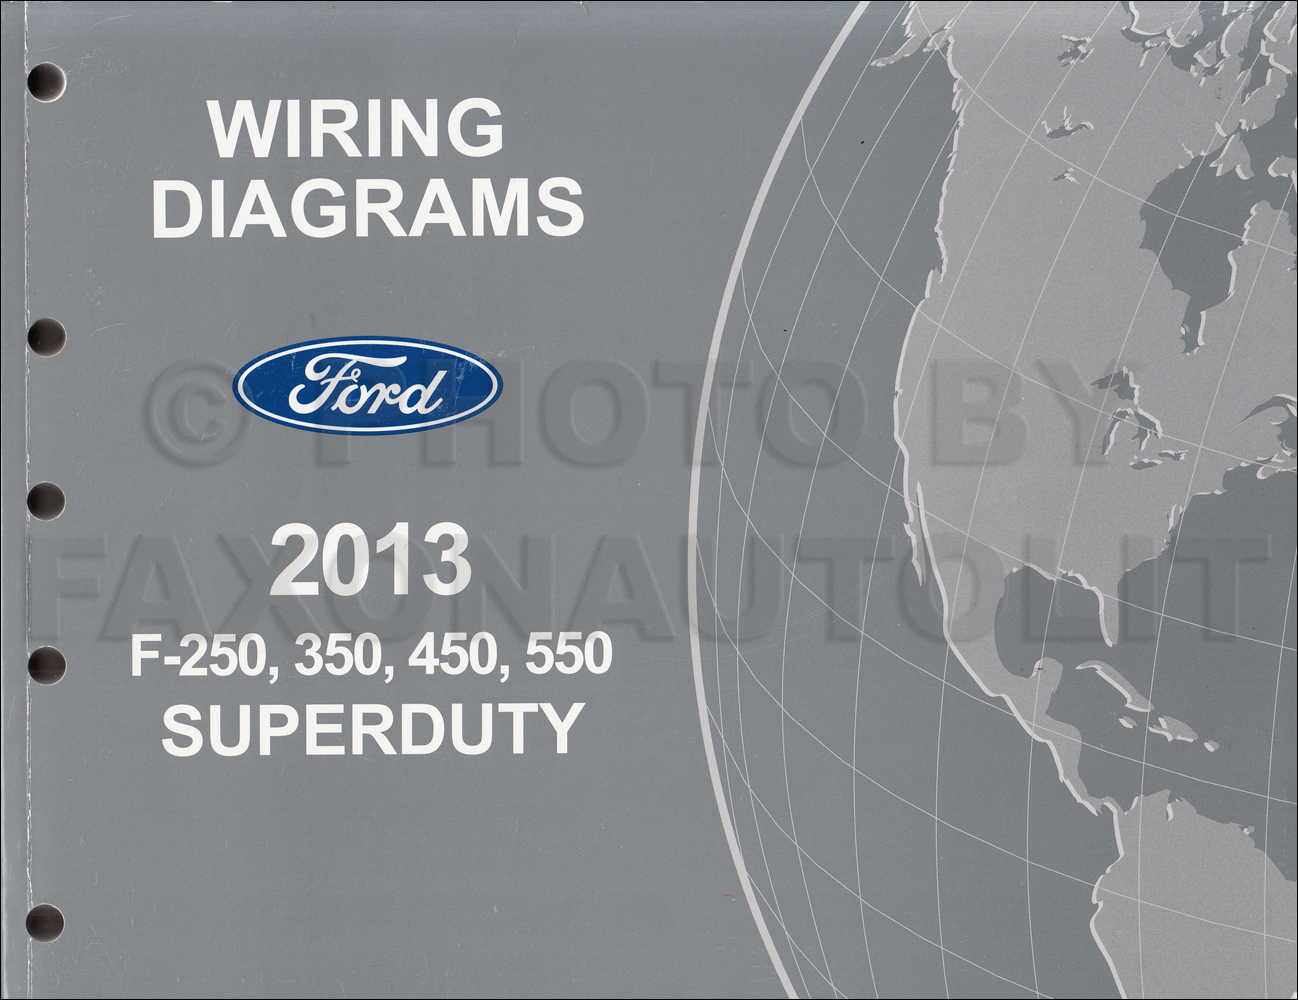 2013 Ford F250-F550 Super DutyTruck Wiring Diagram Manual ...